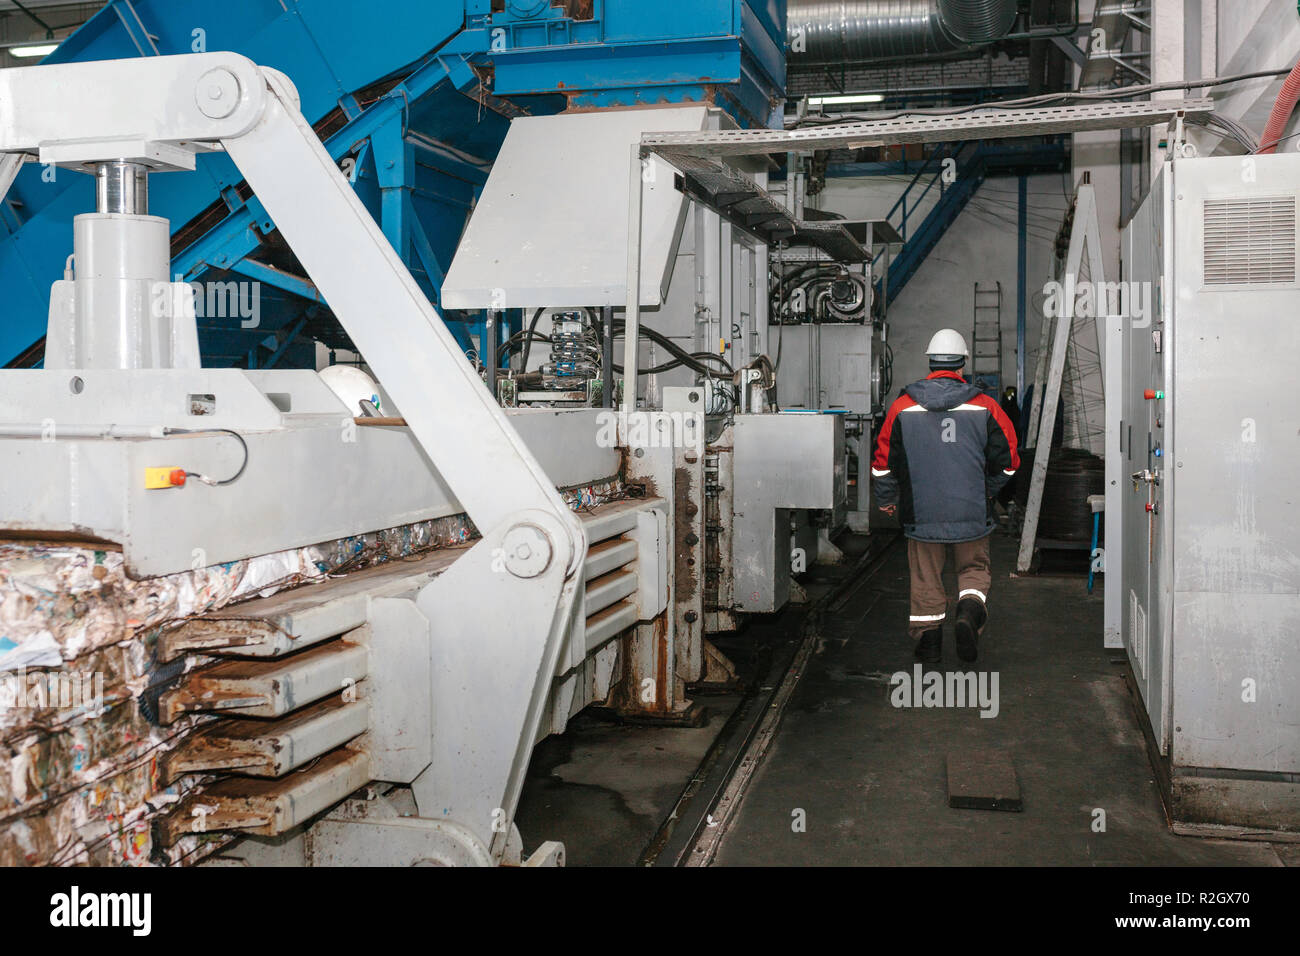 Waste processing plant. Technological process. Recycling and storage of waste for further disposal. Business for sorting and processing of waste. - Stock Image